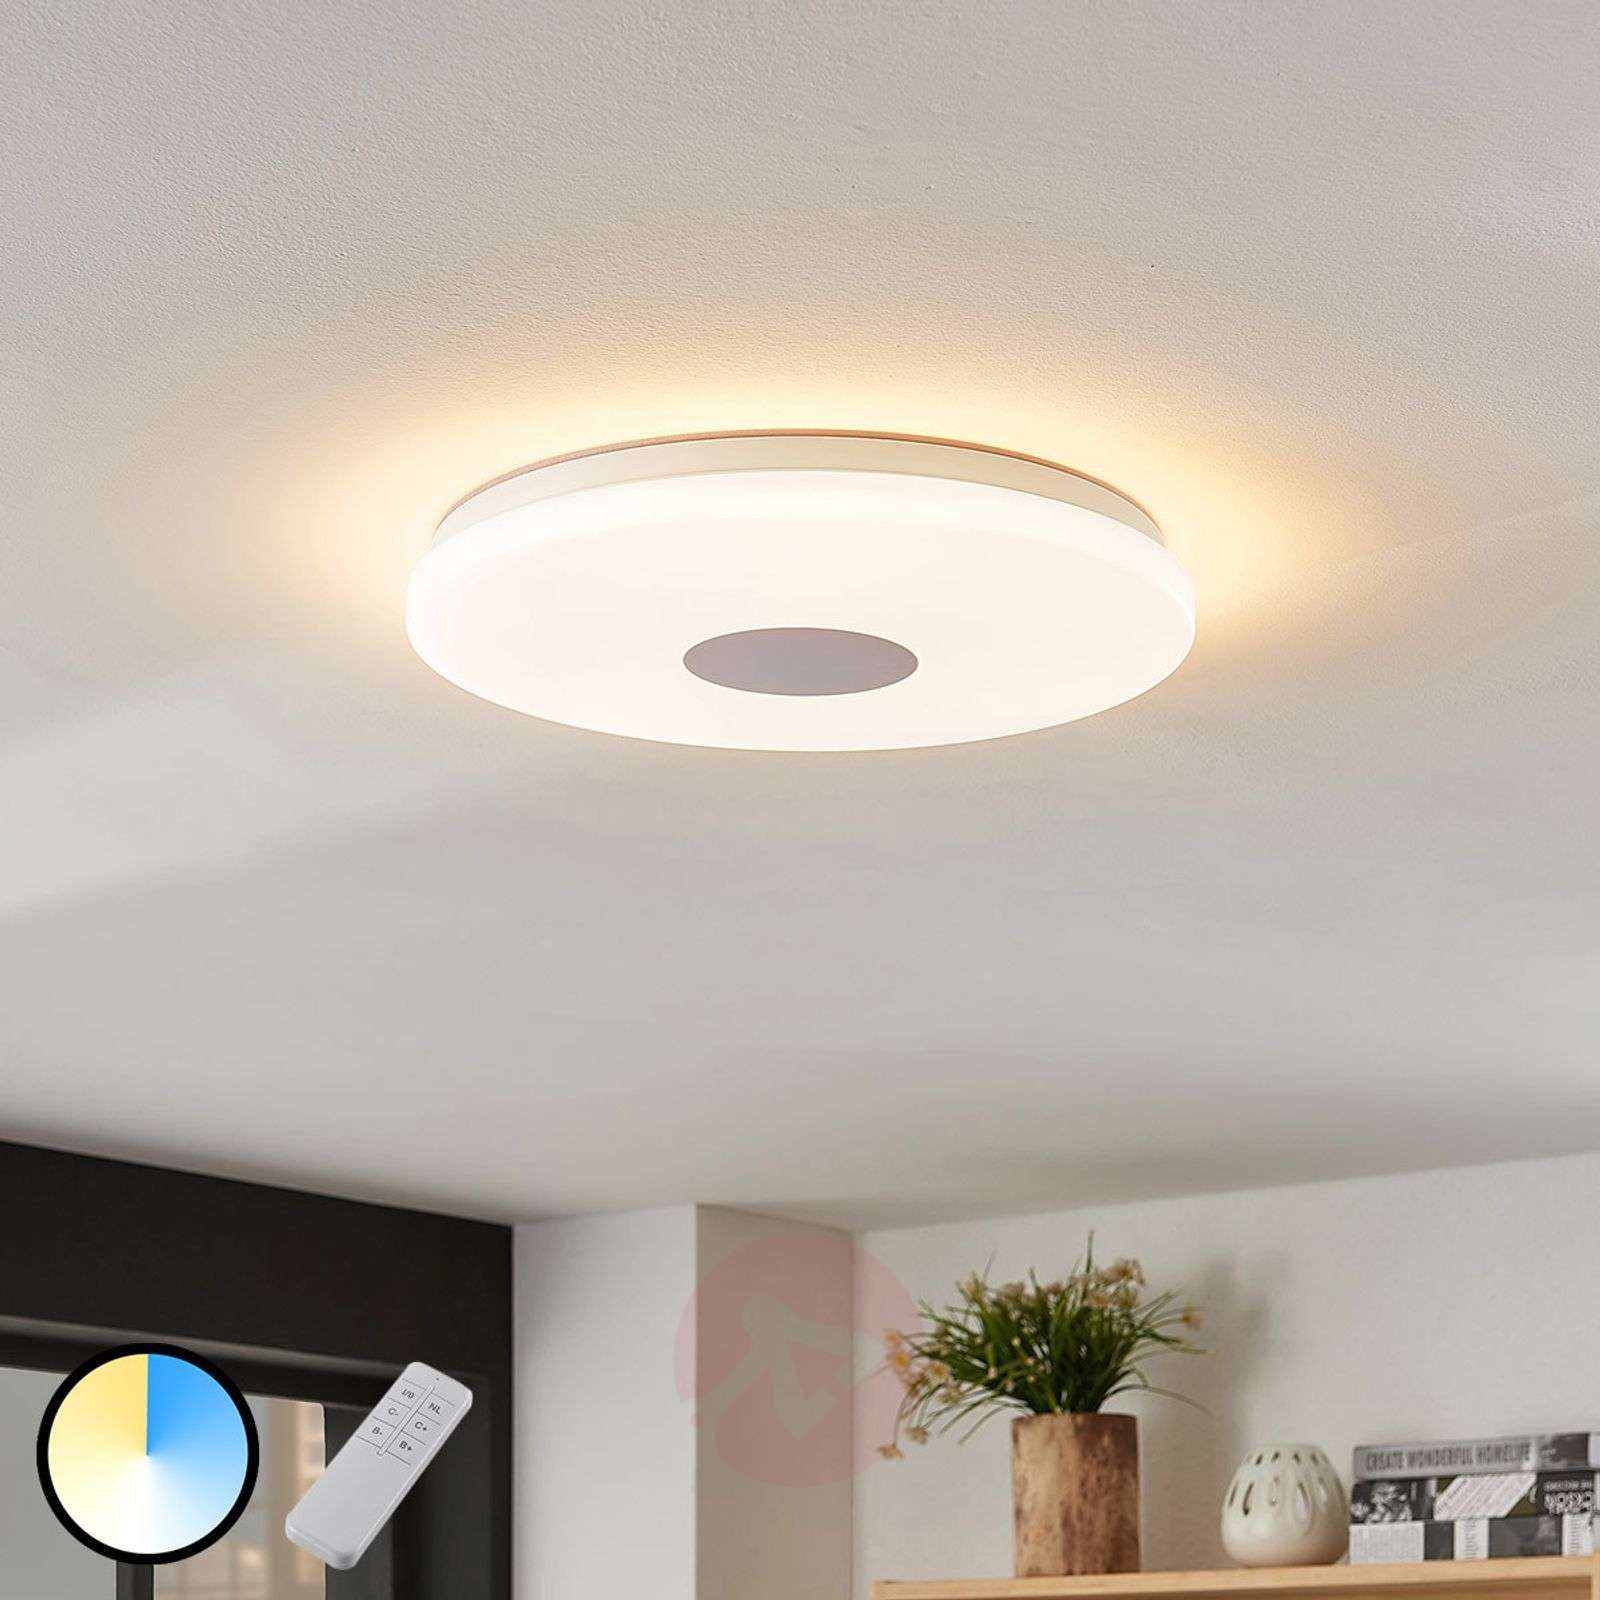 separation shoes f8873 cdff6 Renee LED ceiling lamp, adj. luminous colour 15 W